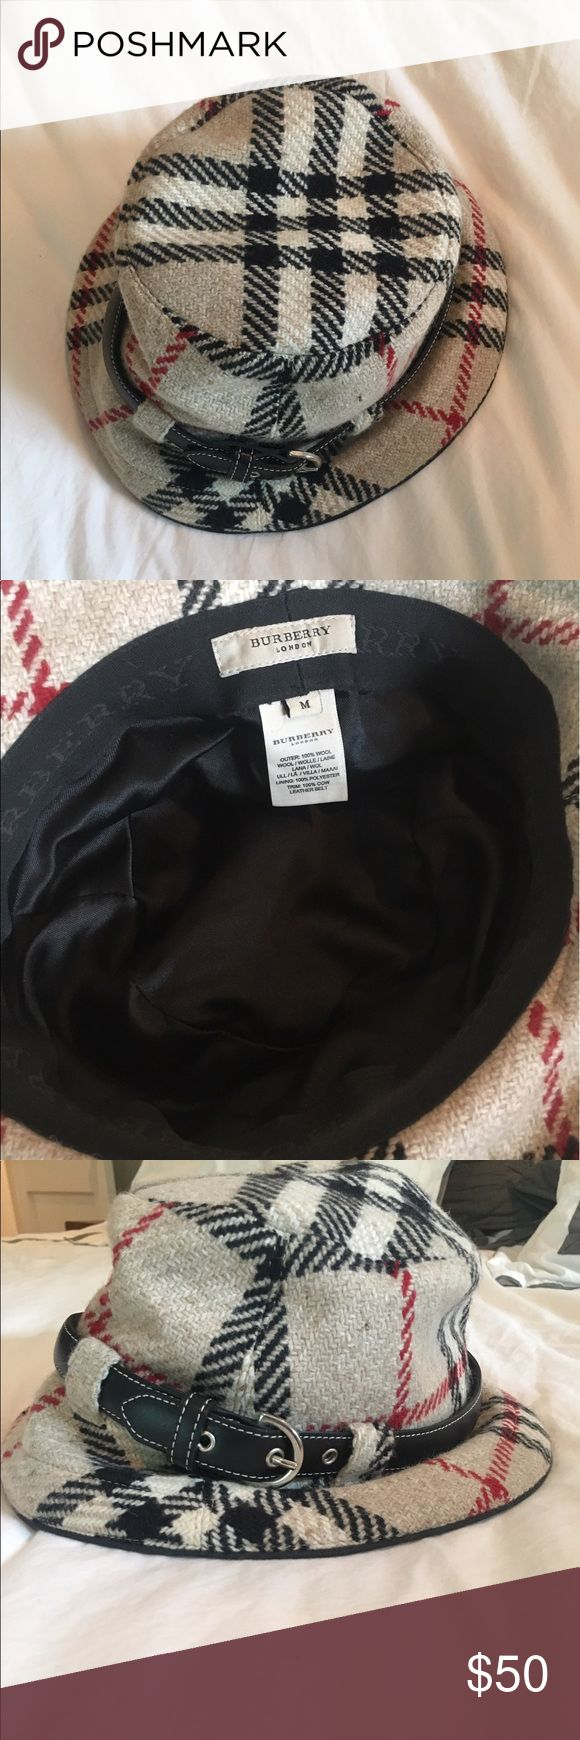 Burberry plaid bucket hat Guaranteed authentic, size medium. A classic! Burberry Accessories Hats